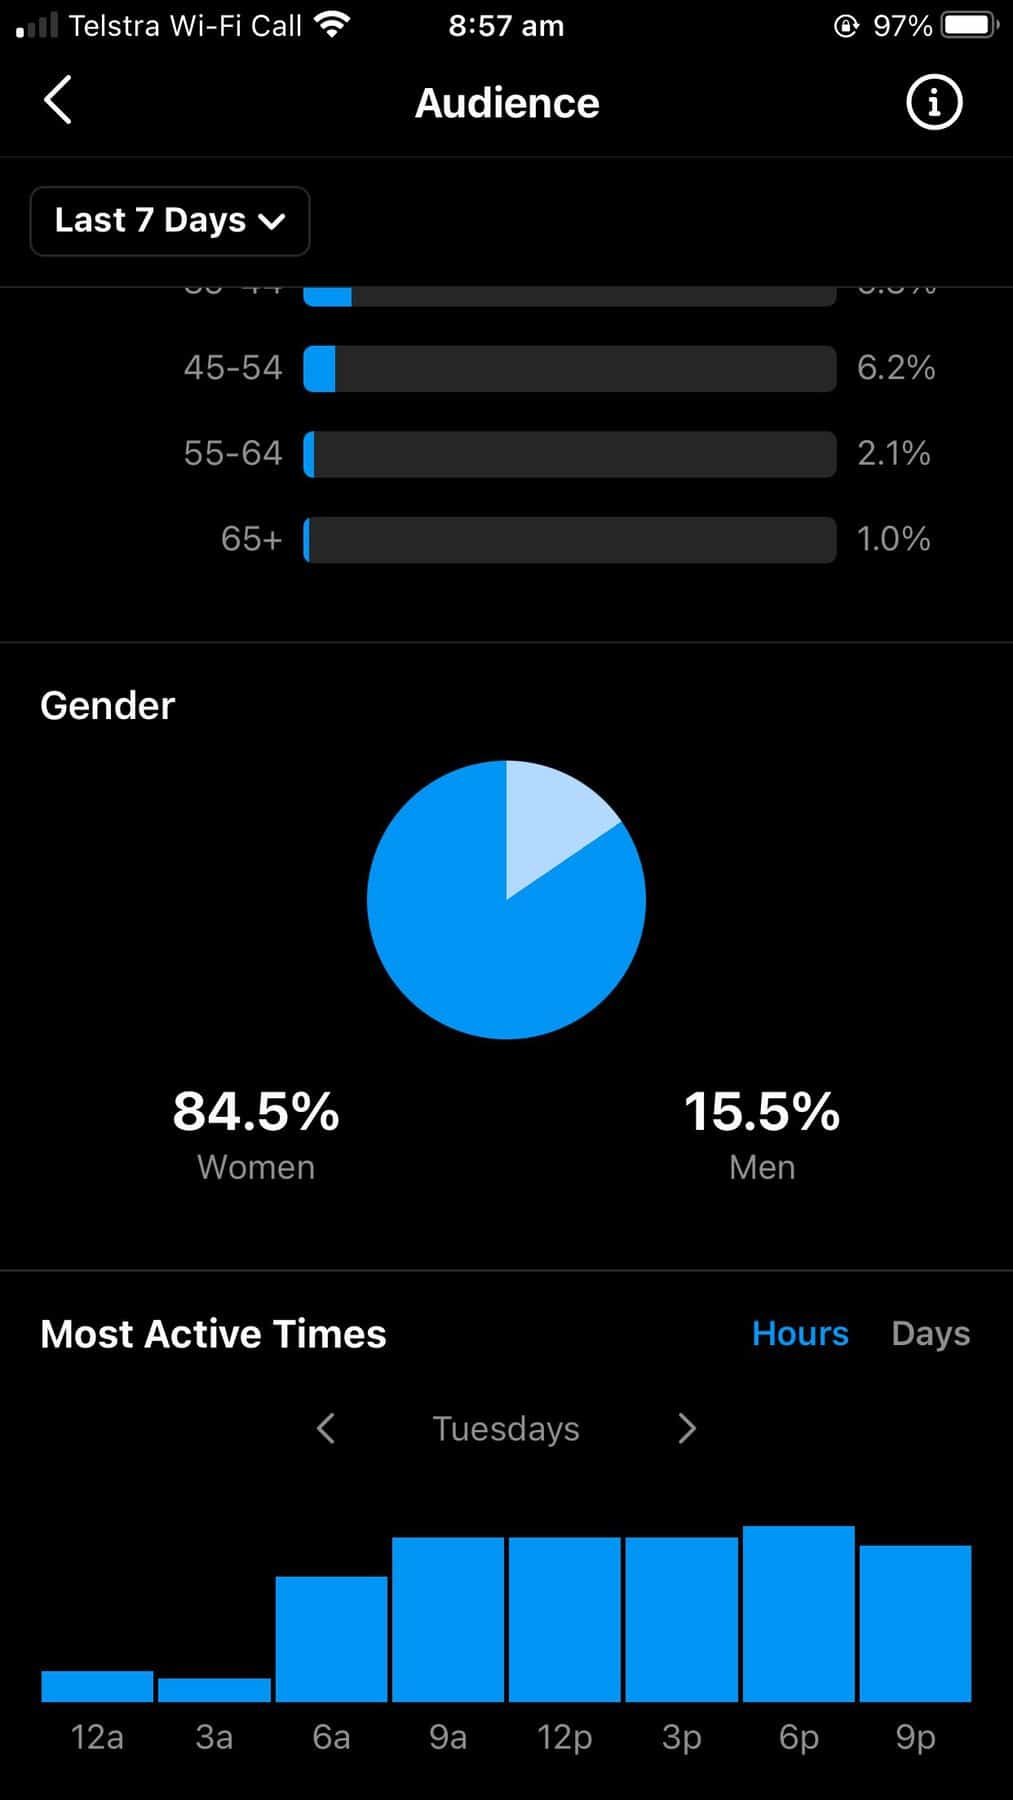 Instagram audience insights showing gender split and audience active times